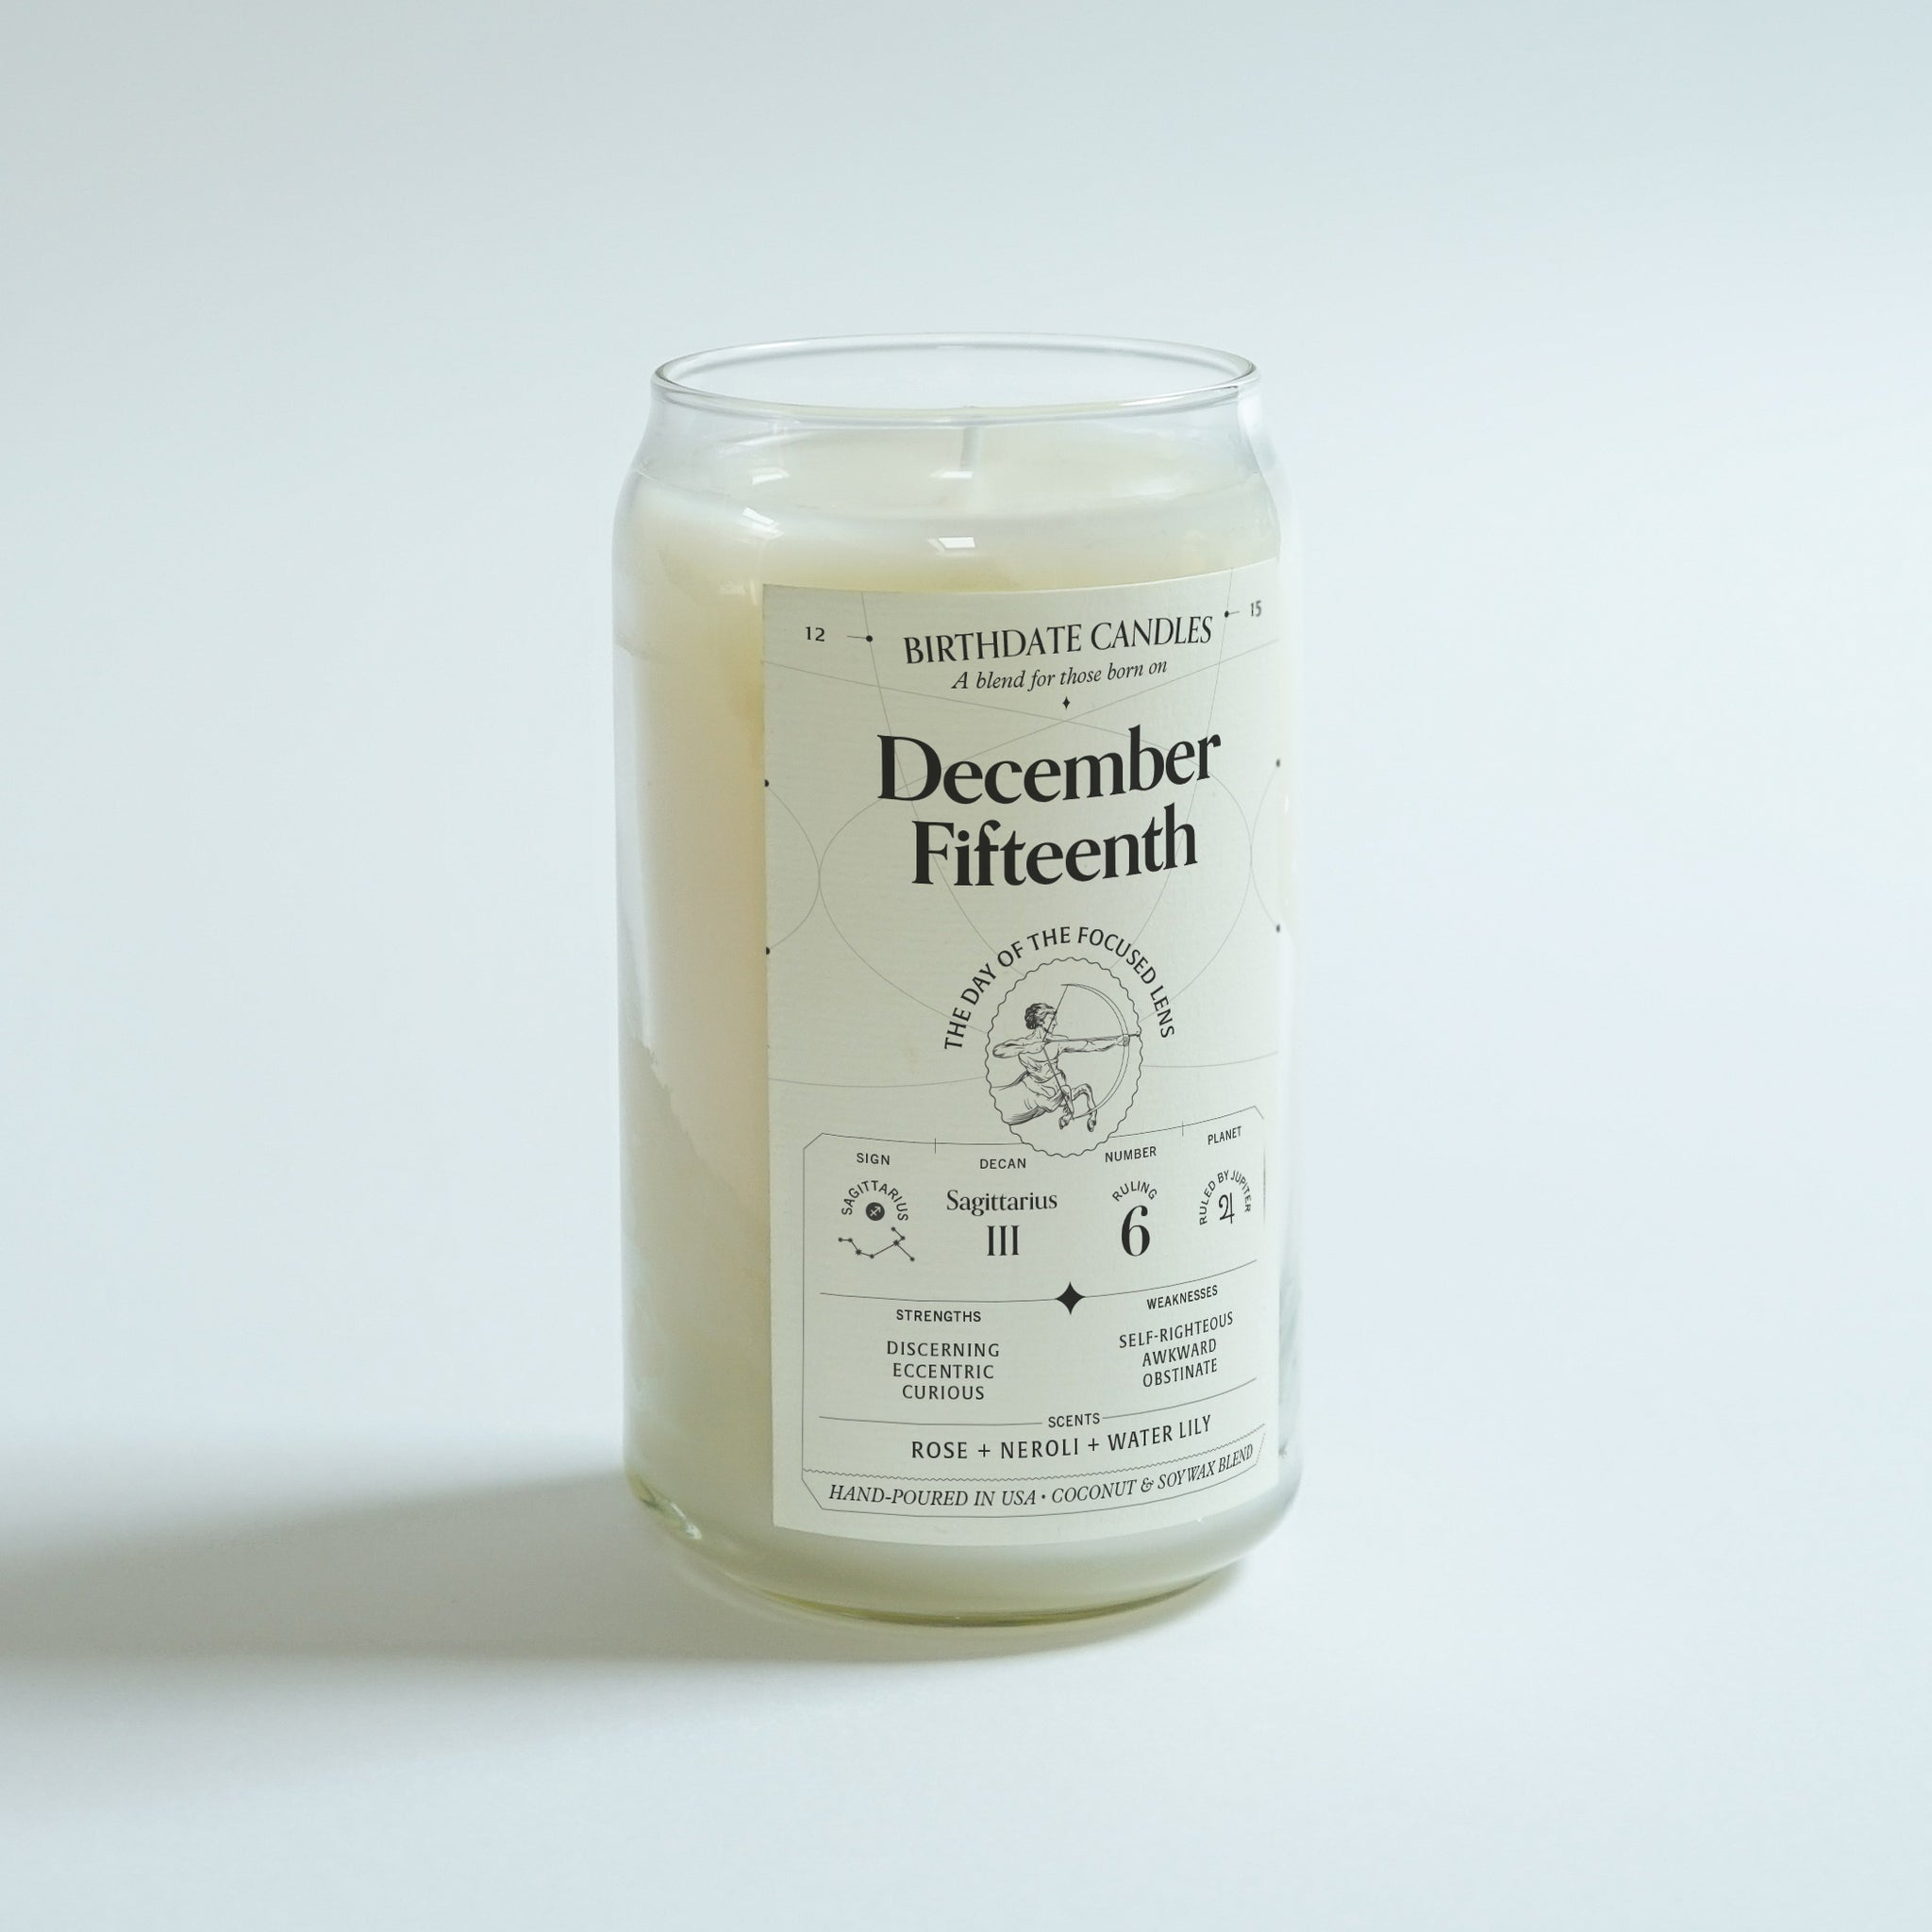 The December Fifteenth Candle